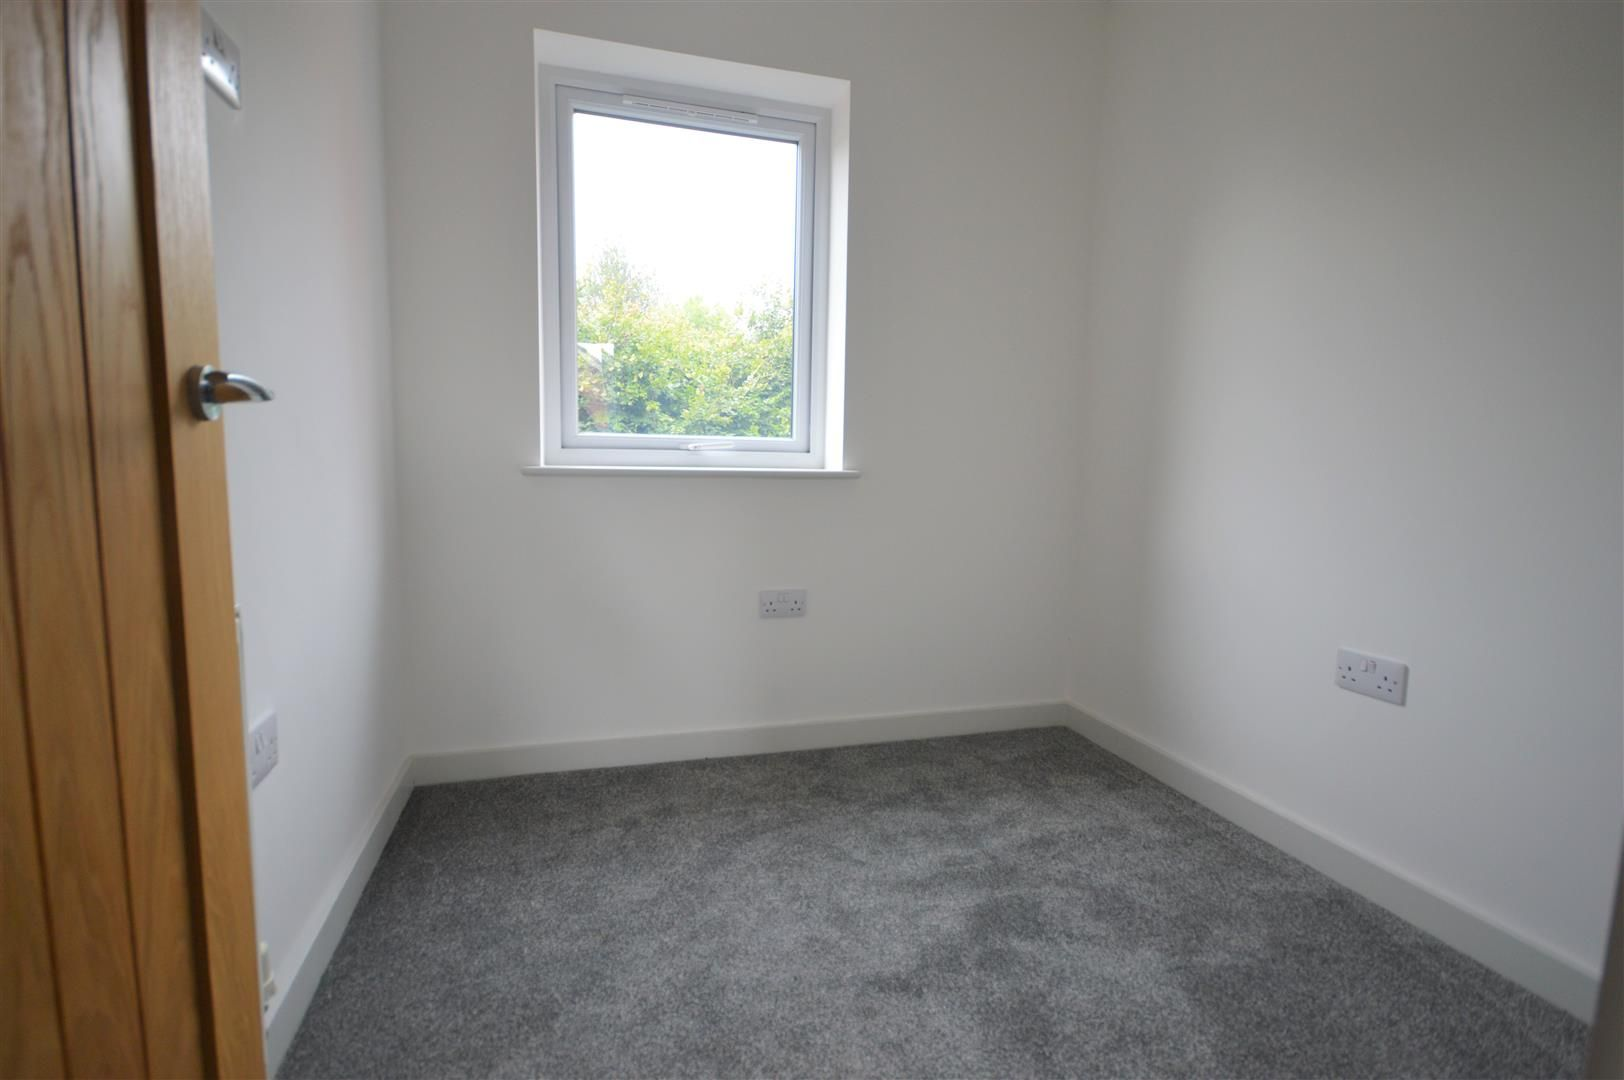 2 bed semi-detached for sale in Leominster 9